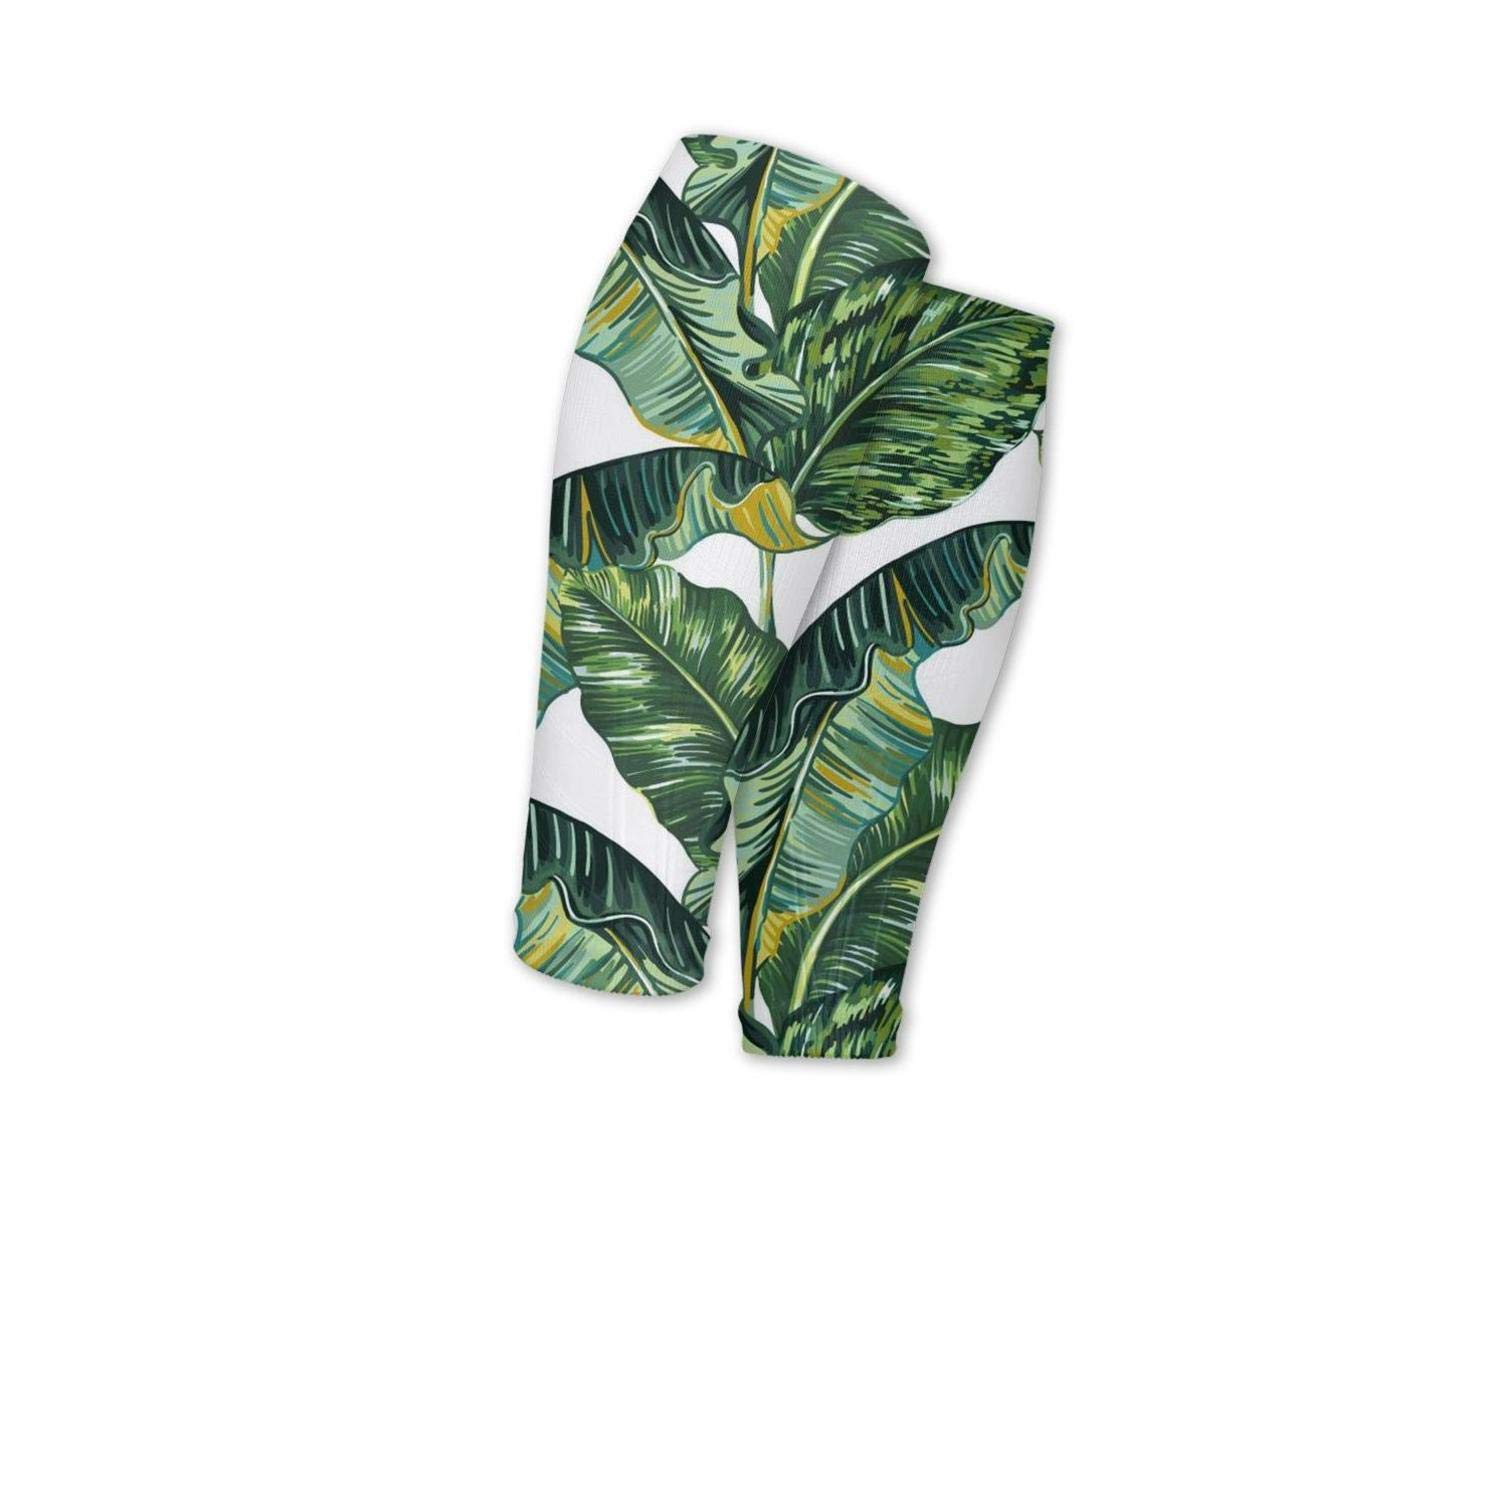 Smilelolly Tropical Jungle Plants Palm Leaf Calf Compression Sleeves Helps Calf Guard Leg Sleeves for Men Women